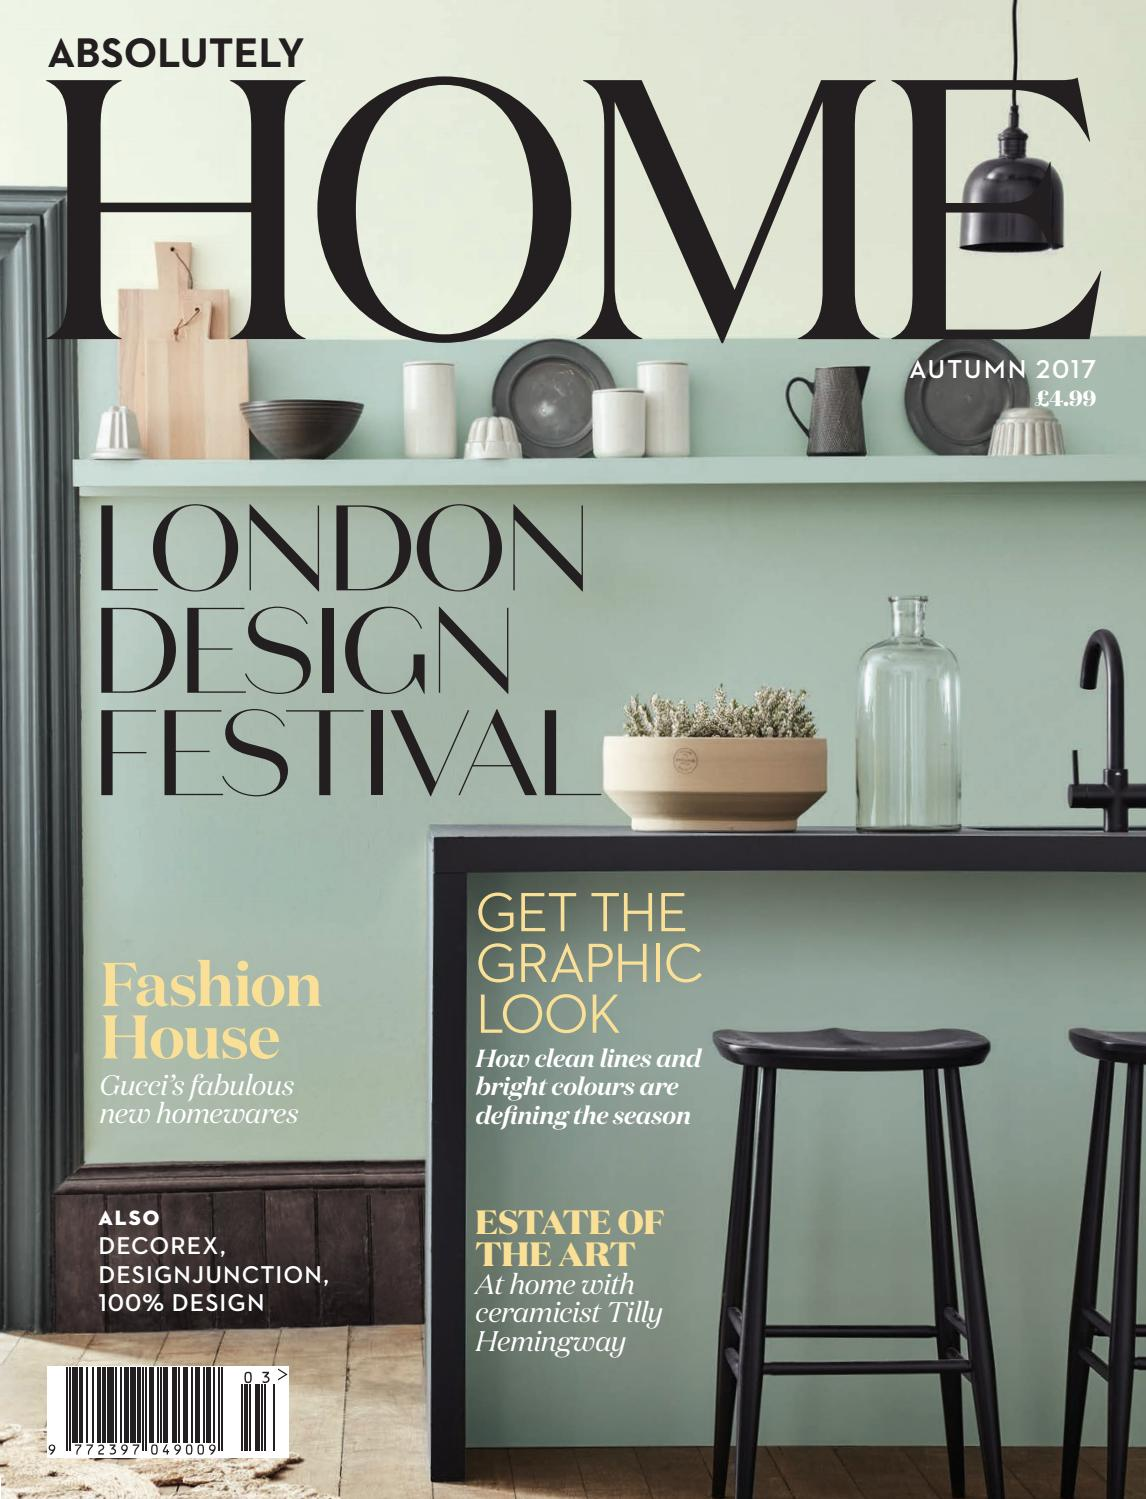 58a17fb4bf2 Absolutely Home Autumn 2017 by Zest Media London - issuu